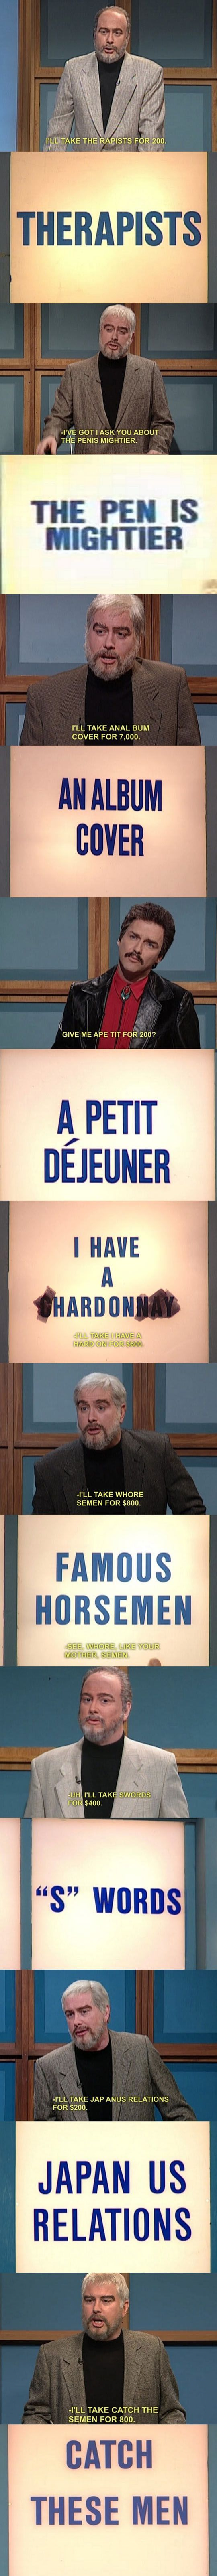 I love Celebrity Jeopardy on SNL. Probably some of my favorite skits ever!